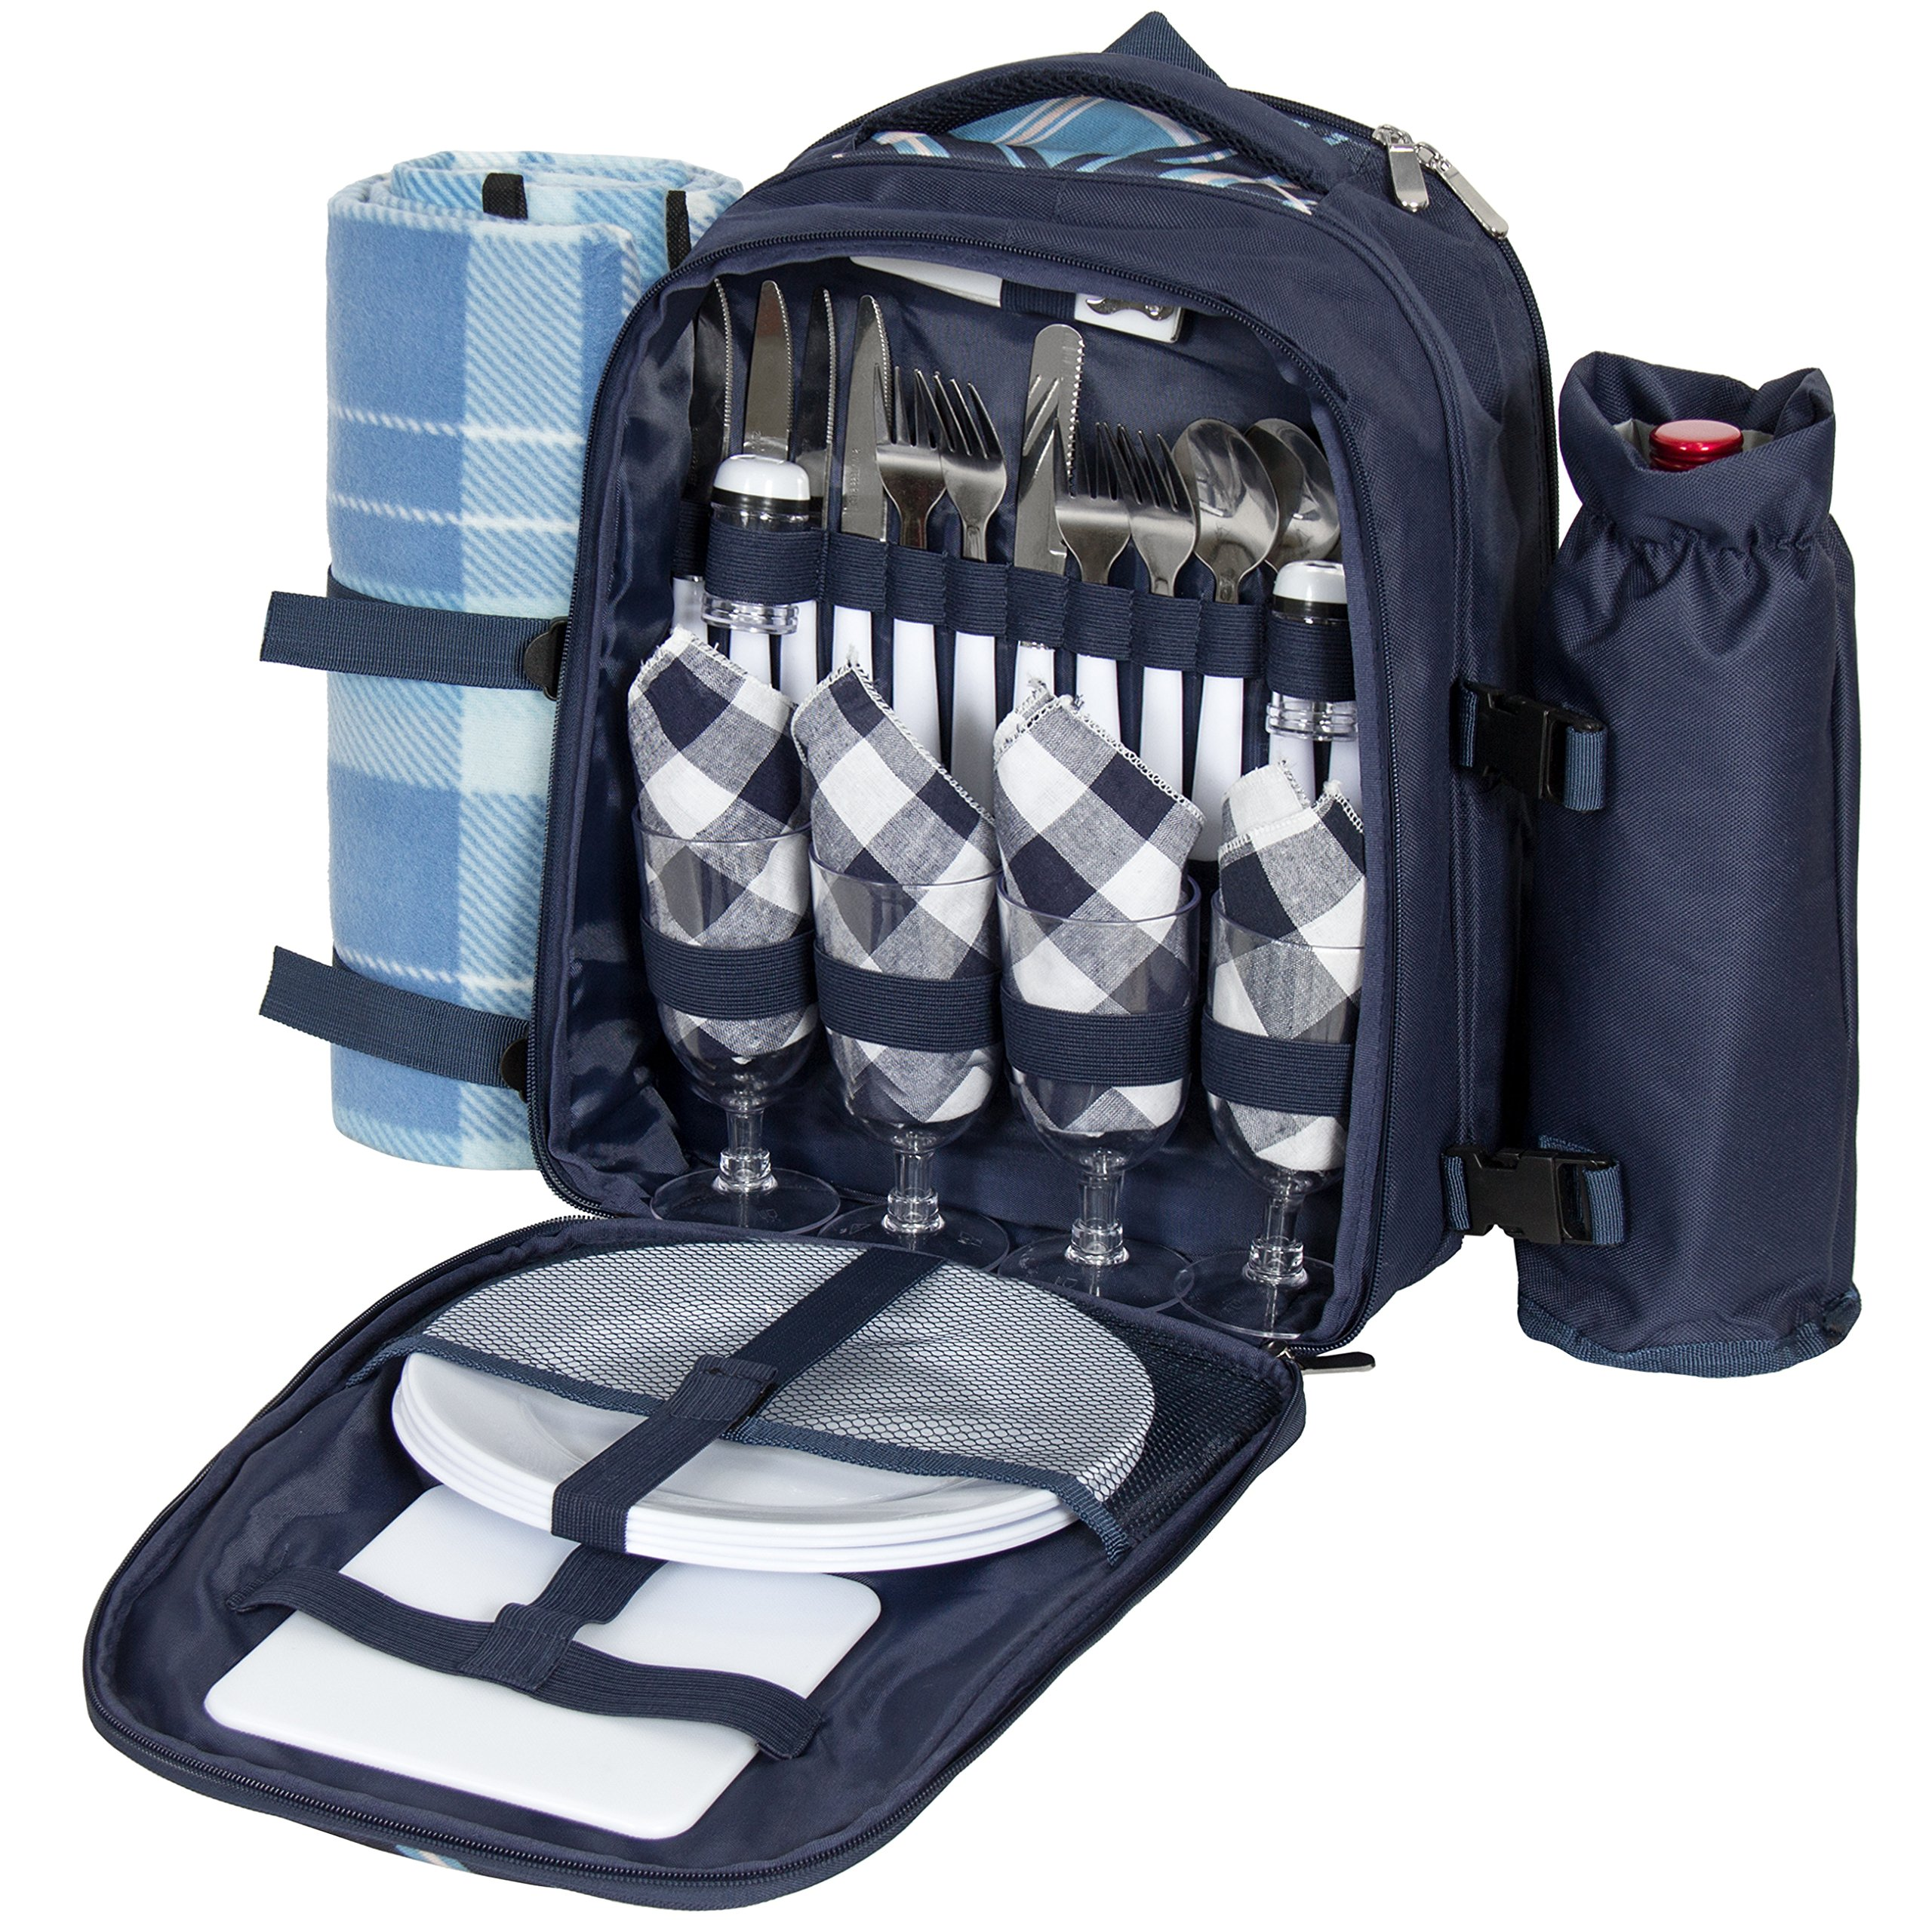 Best Choice Products 4-Person Insulated Portable Picnic Bag Set w/Blanket, Stainless Steel Flatware, Plates, Glasses, Wine Opener, Bottle Holder - Blue